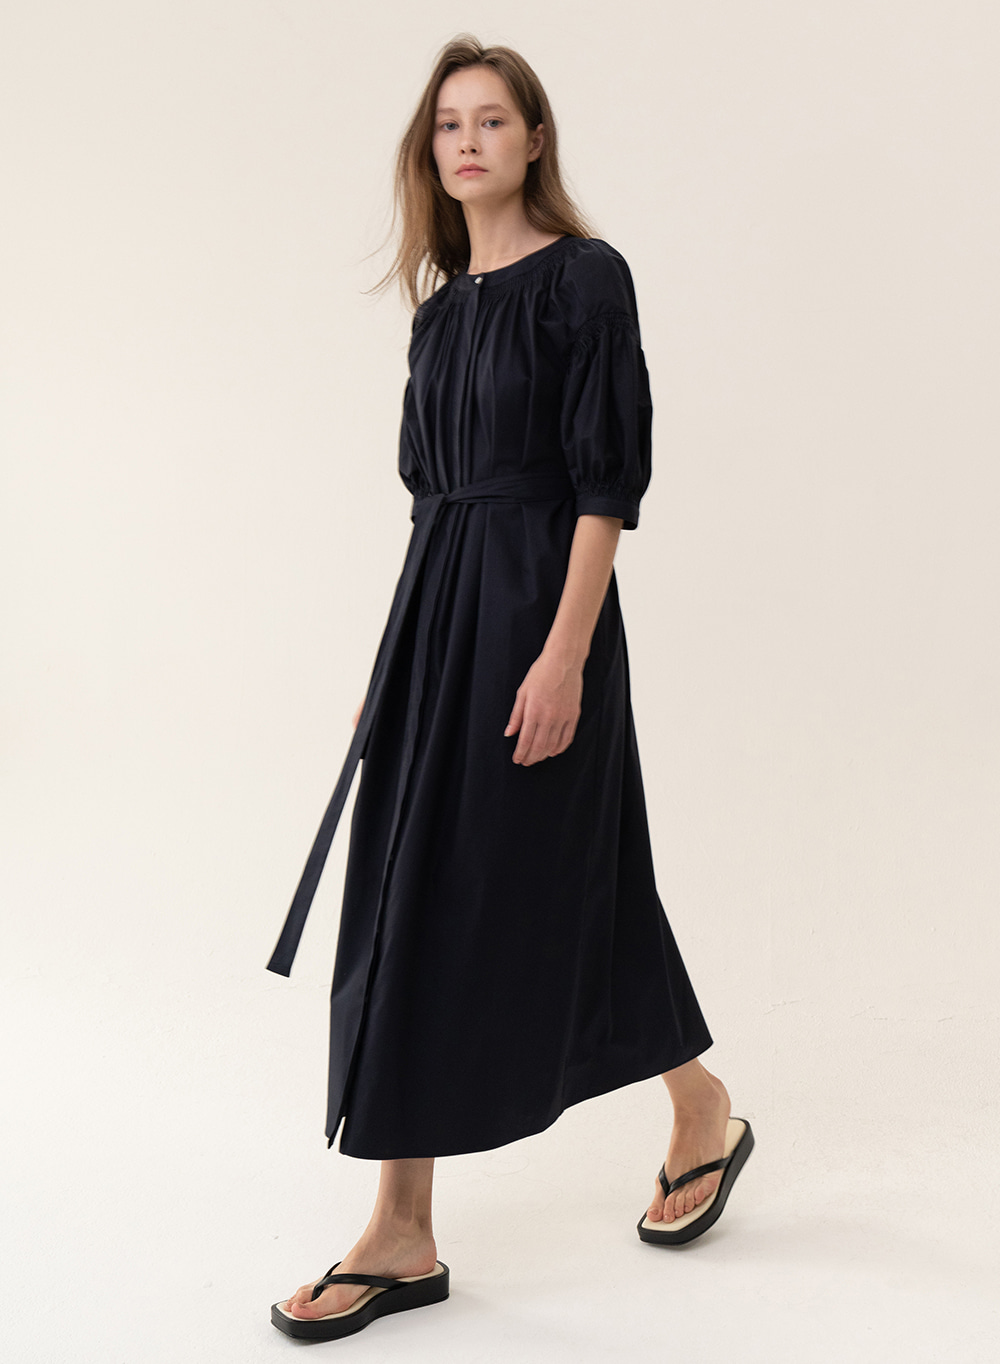 [ESSENTIAL] Original Balloon Dress Navy